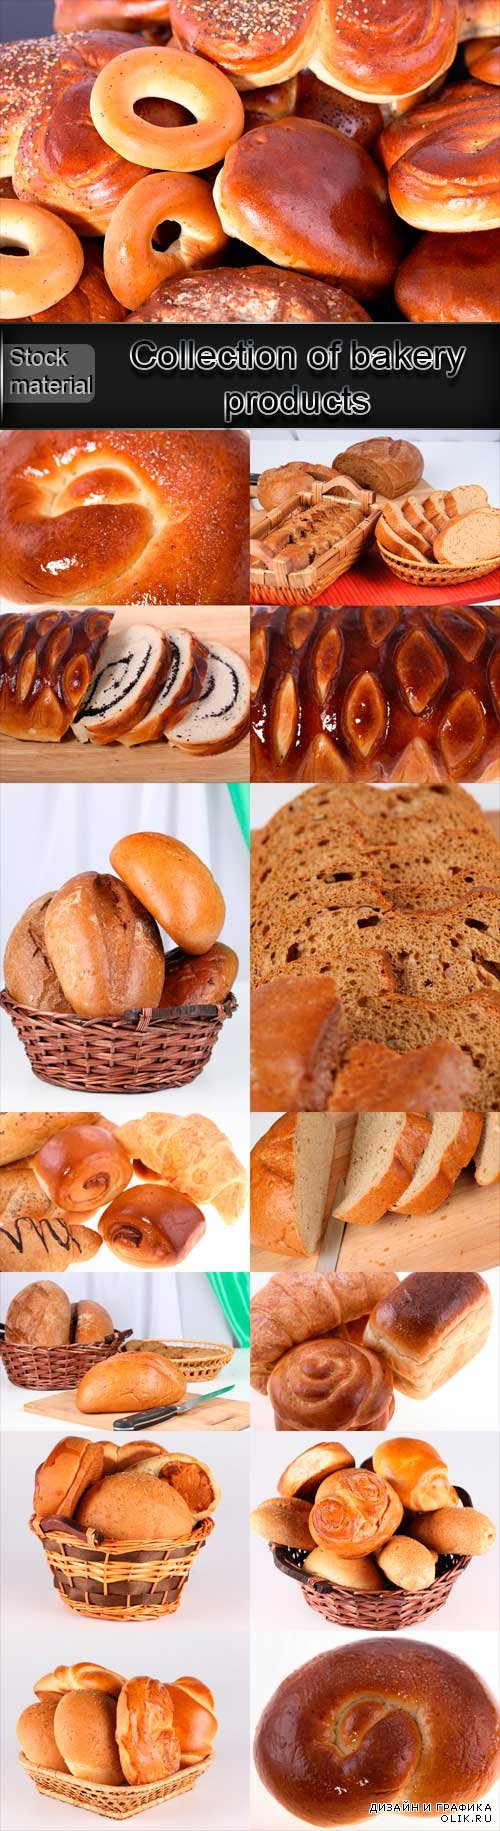 Collection of bakery products